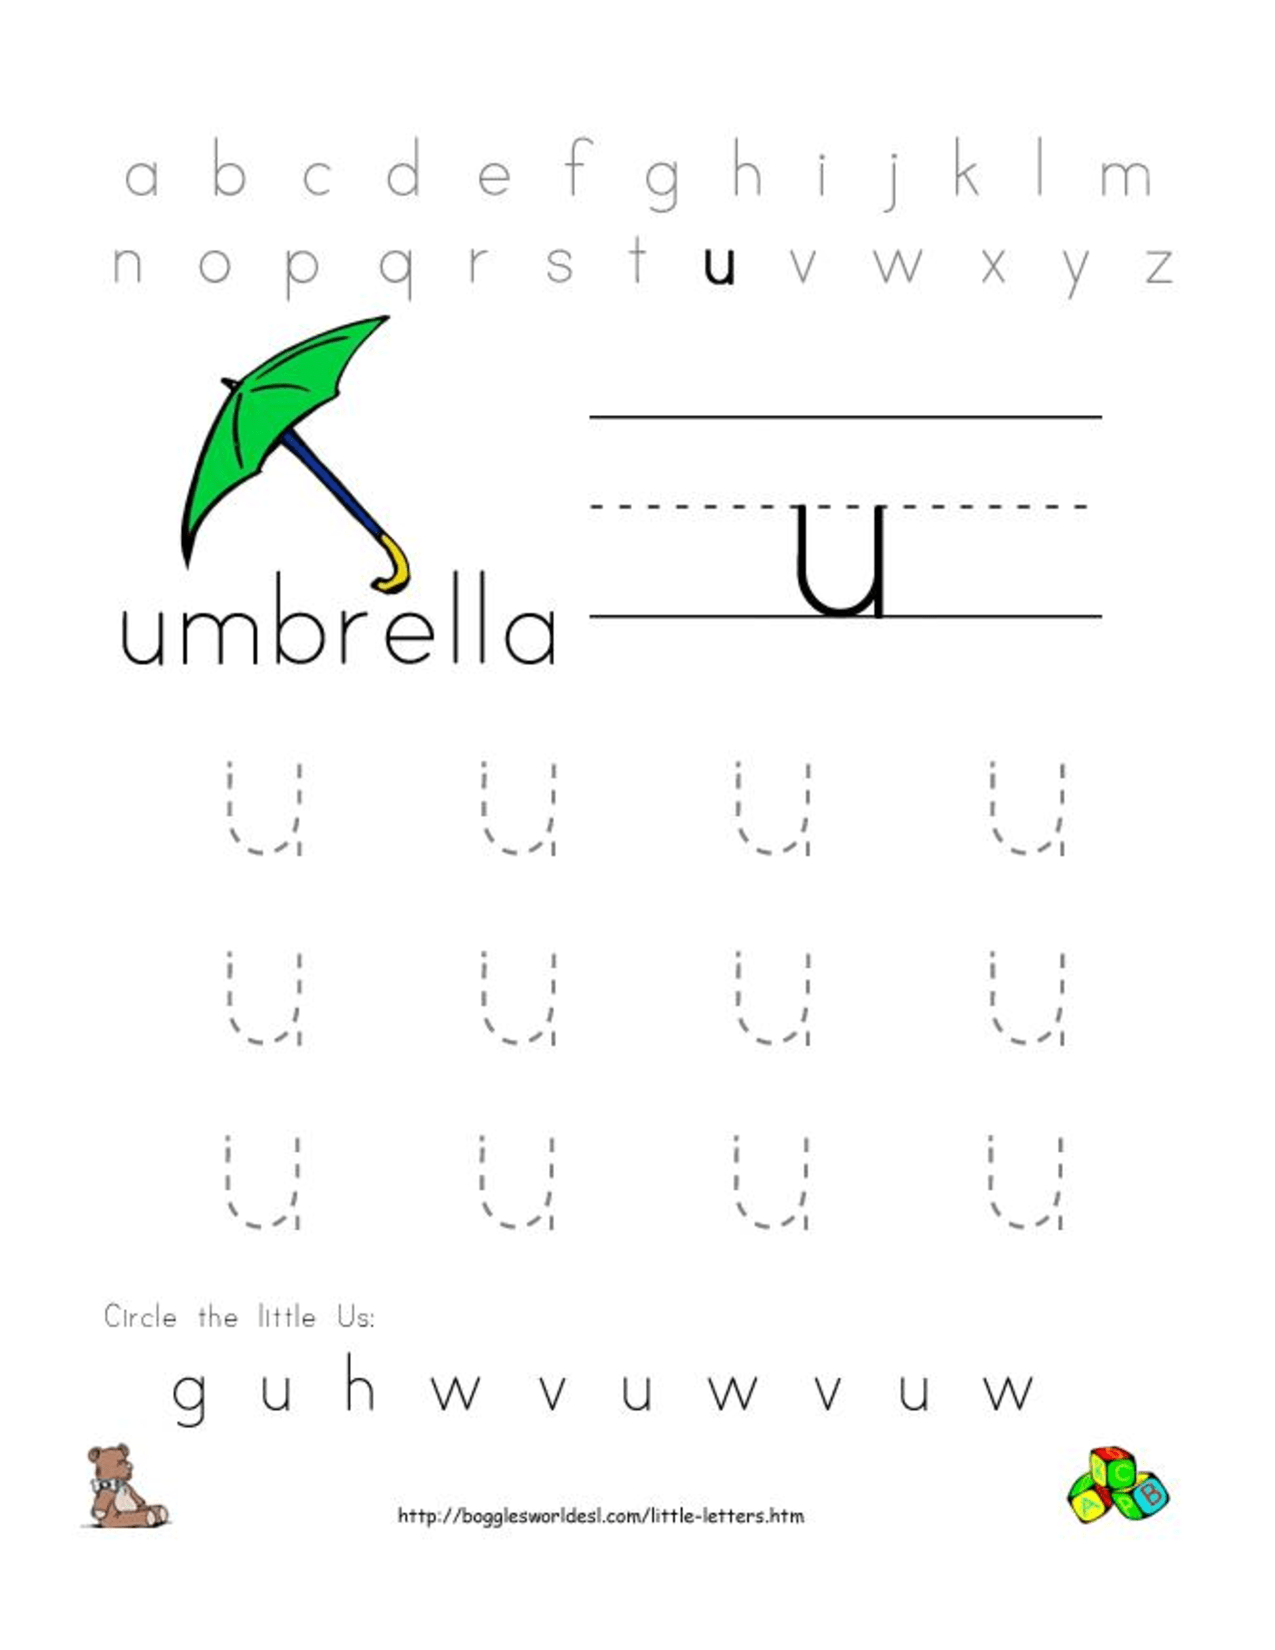 Alphabet Worksheets For Preschoolers Alphabet Worksheet Little Letter U